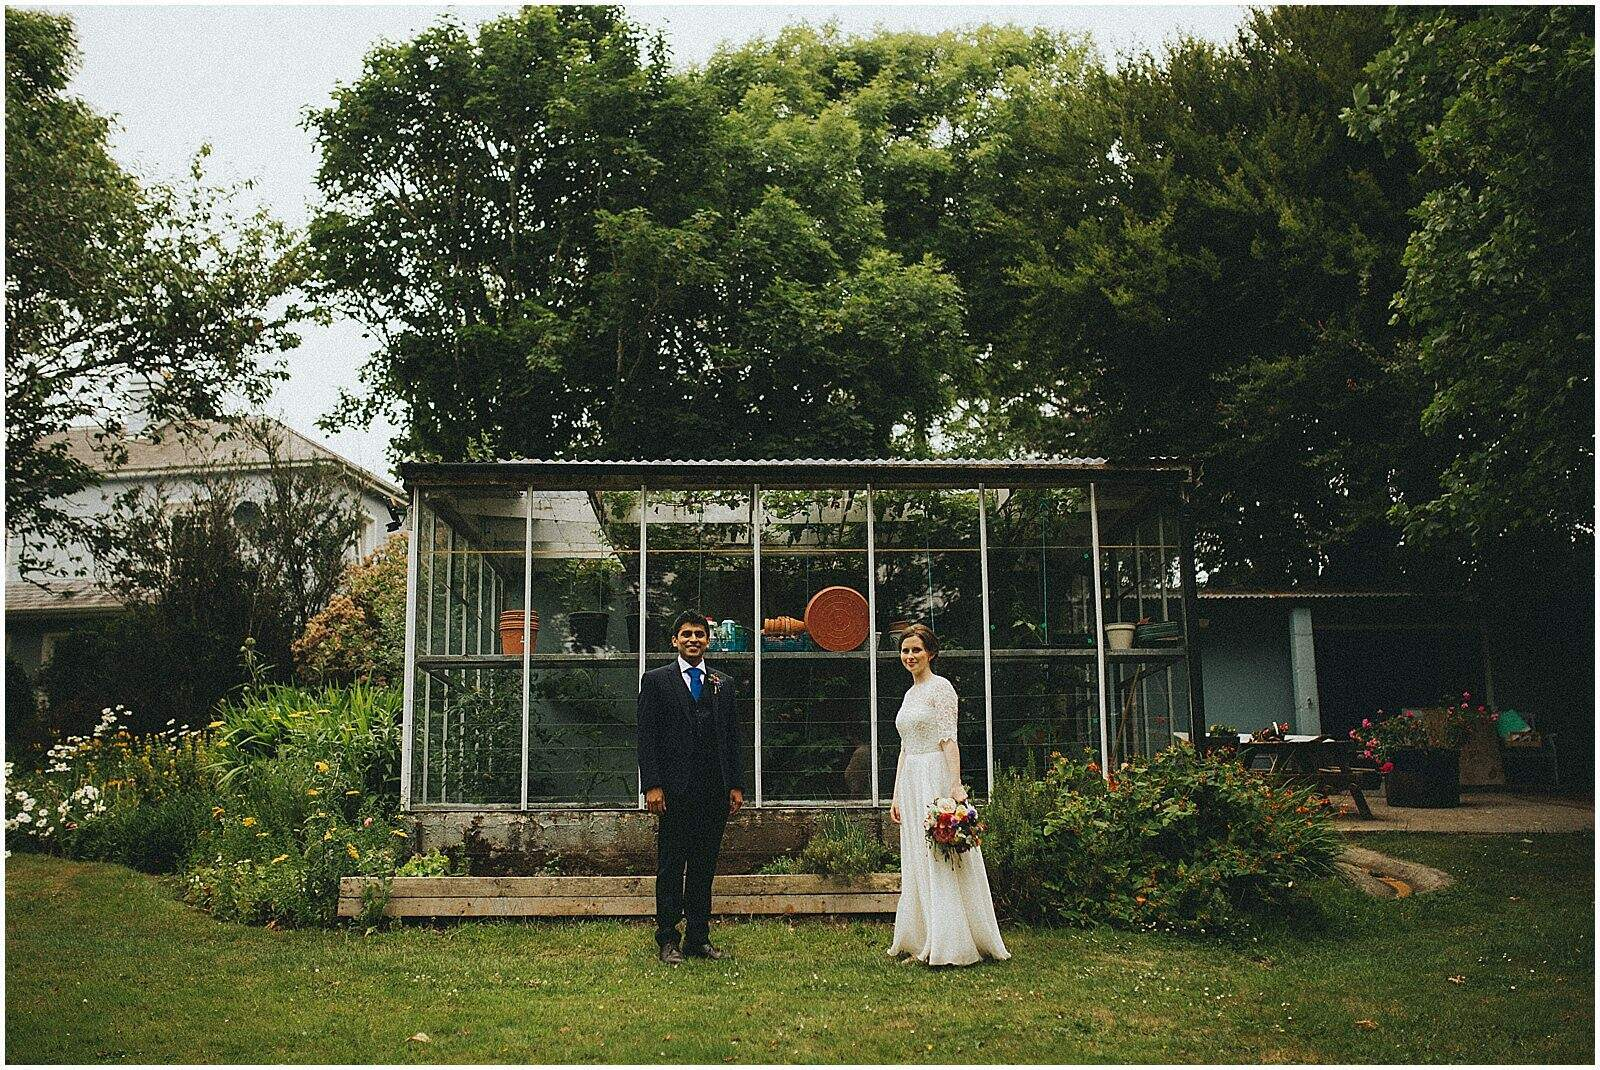 BLAIRSCOVE HOUSE – NÓRÍDE AND RAVI 89